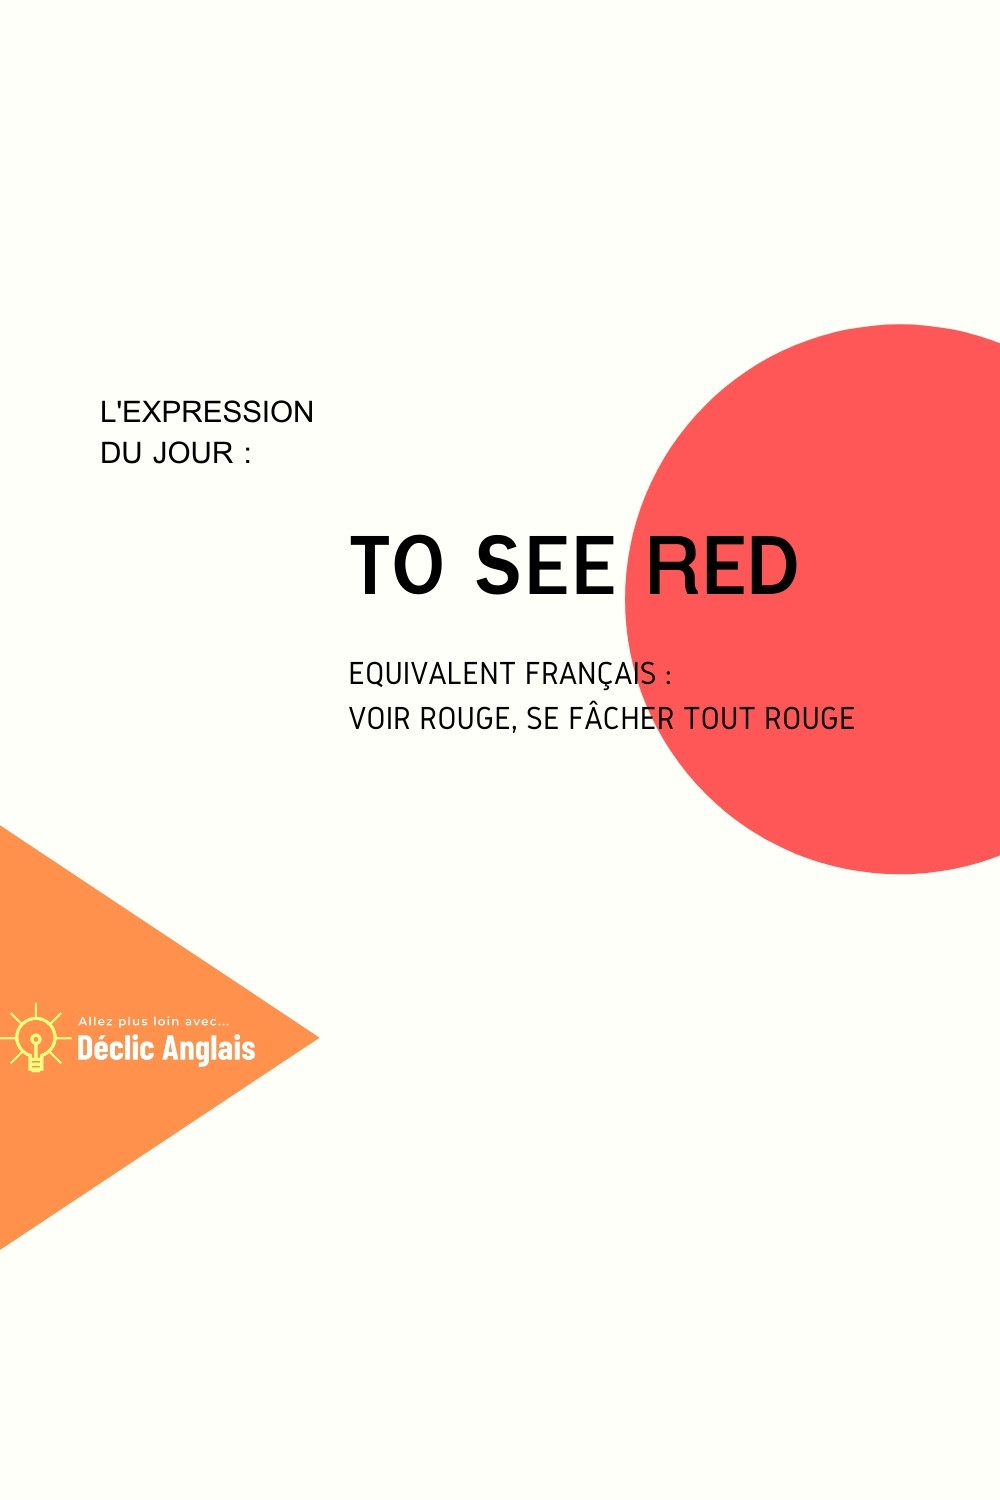 English expression to see red explained in French